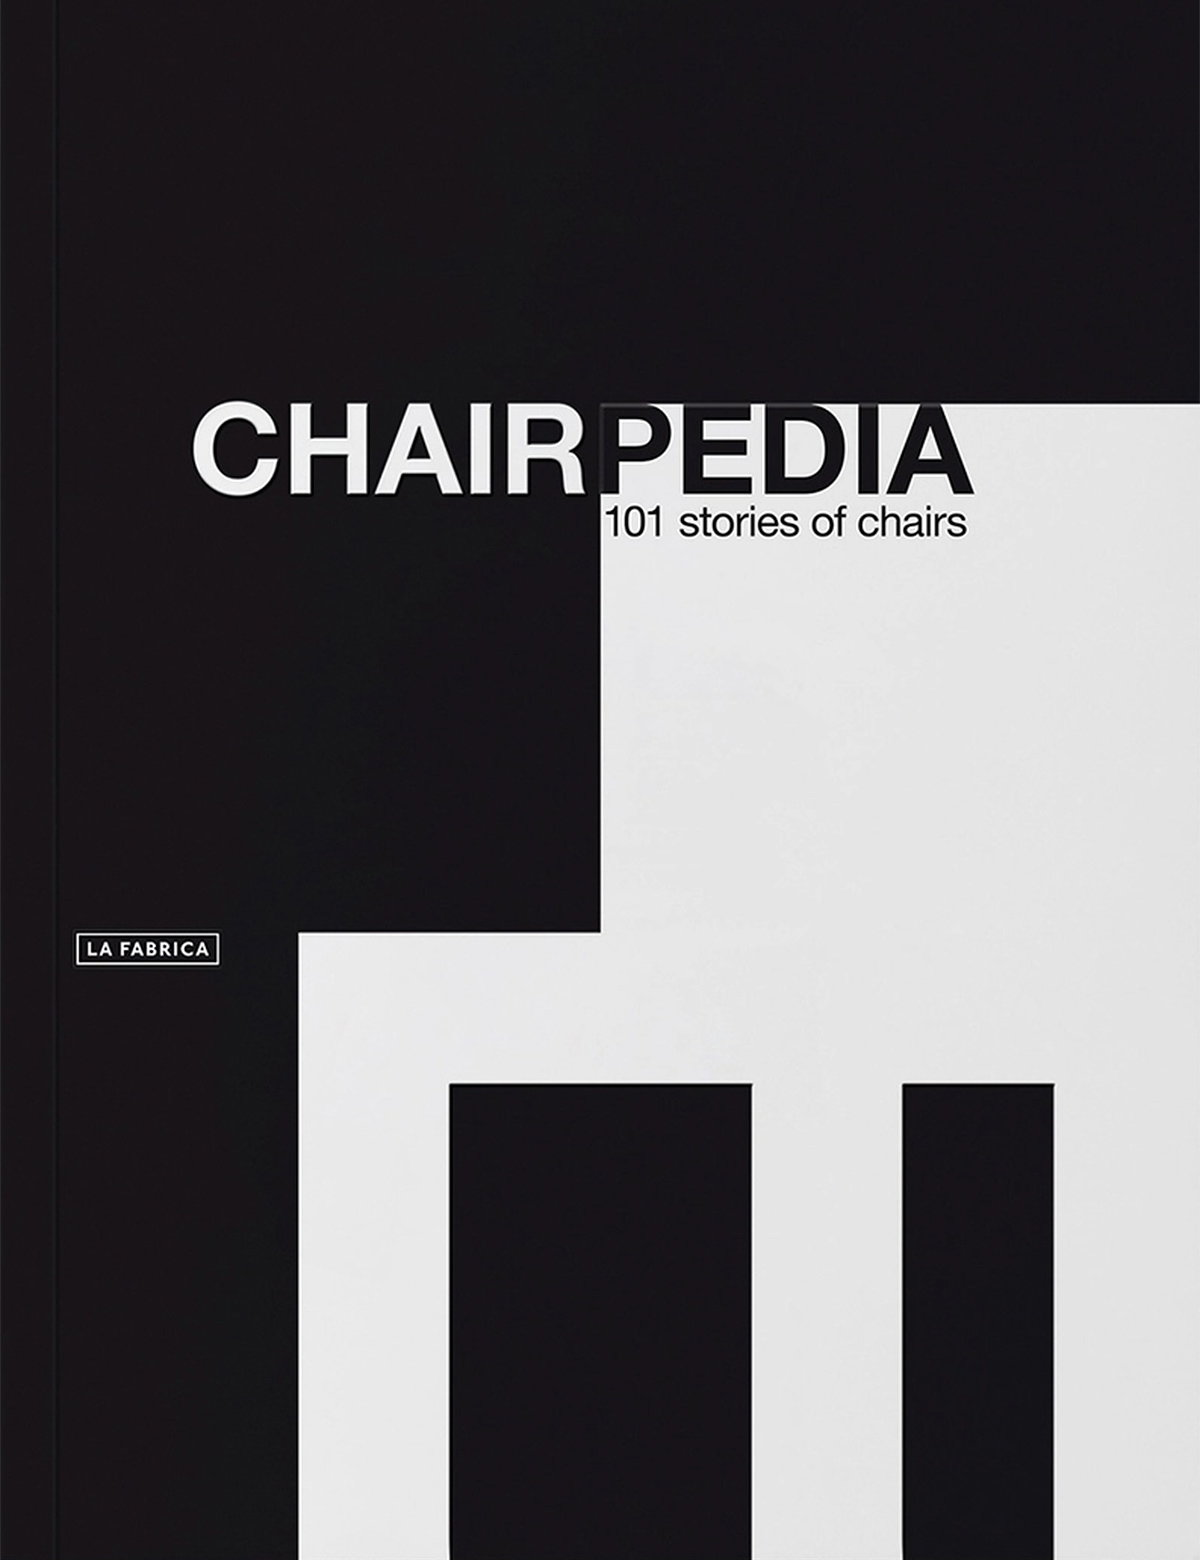 Chairpedia - 101 Stories of Chairs